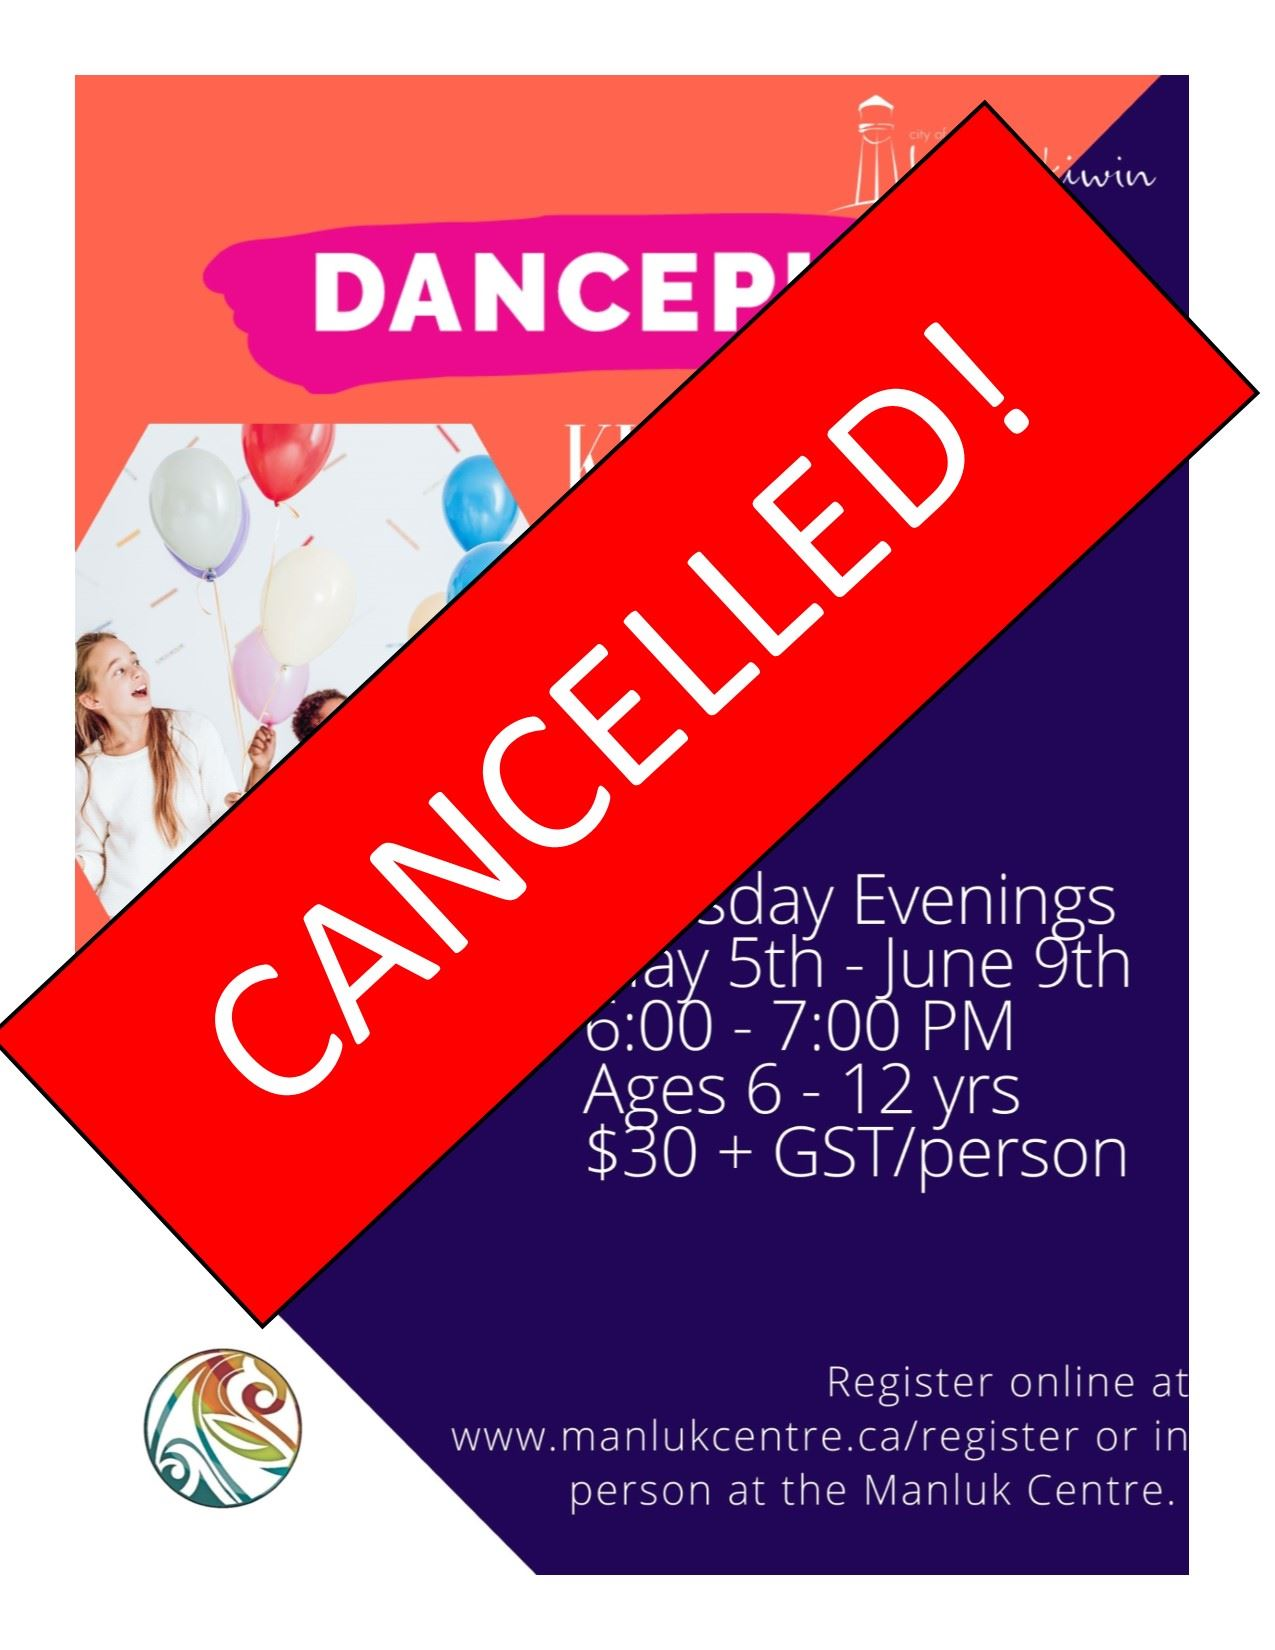 CANCELLED Dancepl3y Kids for Spring